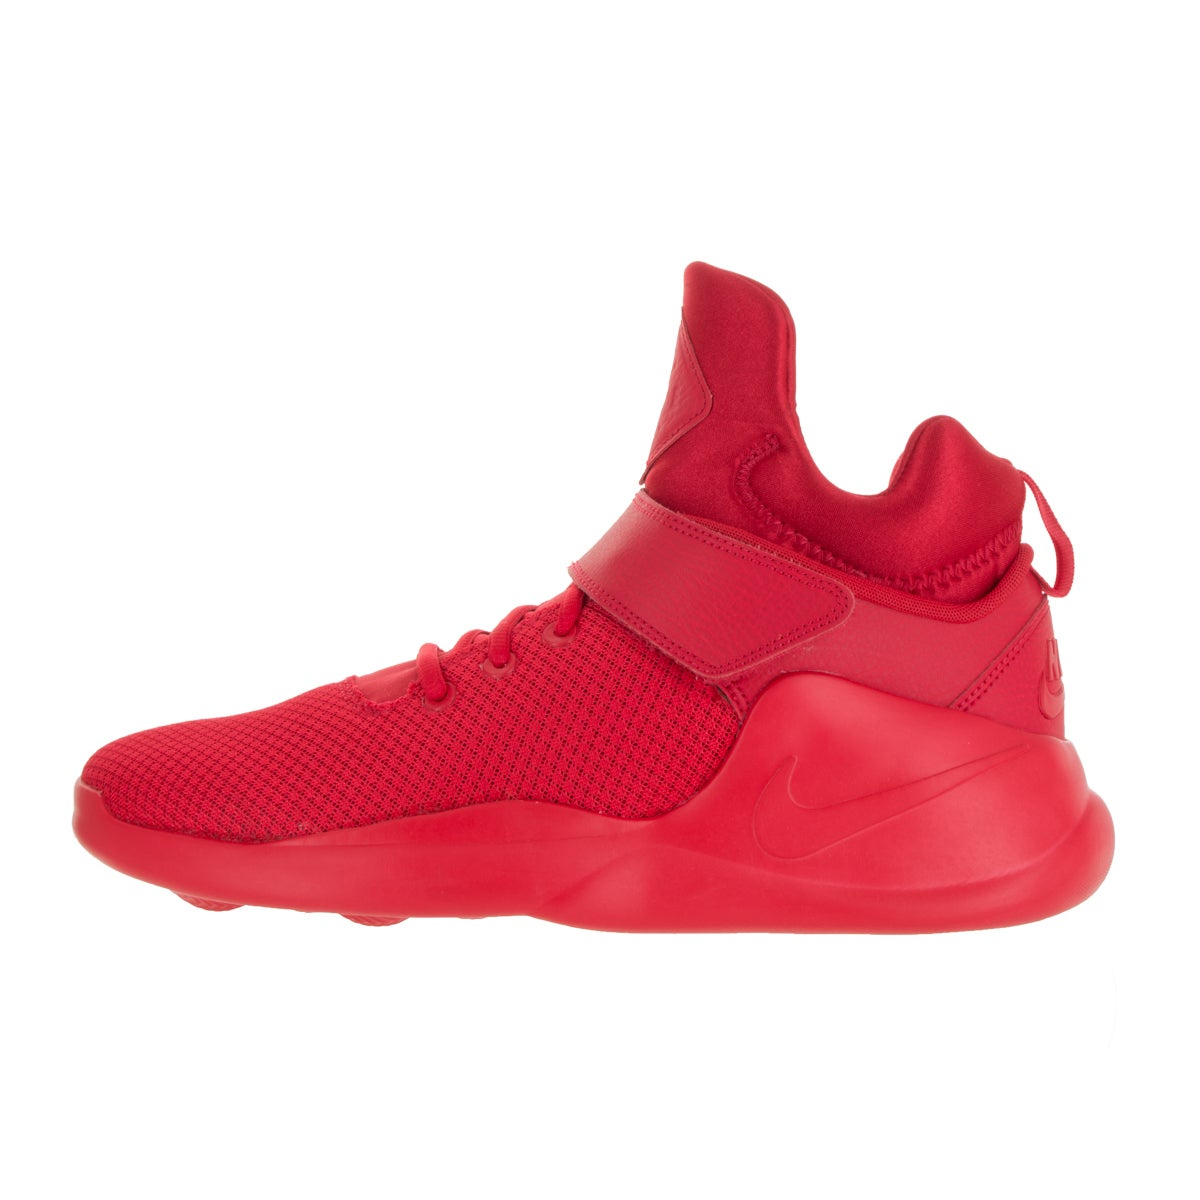 6a24b53ced7f Shop Nike Men s Kwazi Action Red Fabric Basketball Shoes - Free Shipping  Today - Overstock - 13394210